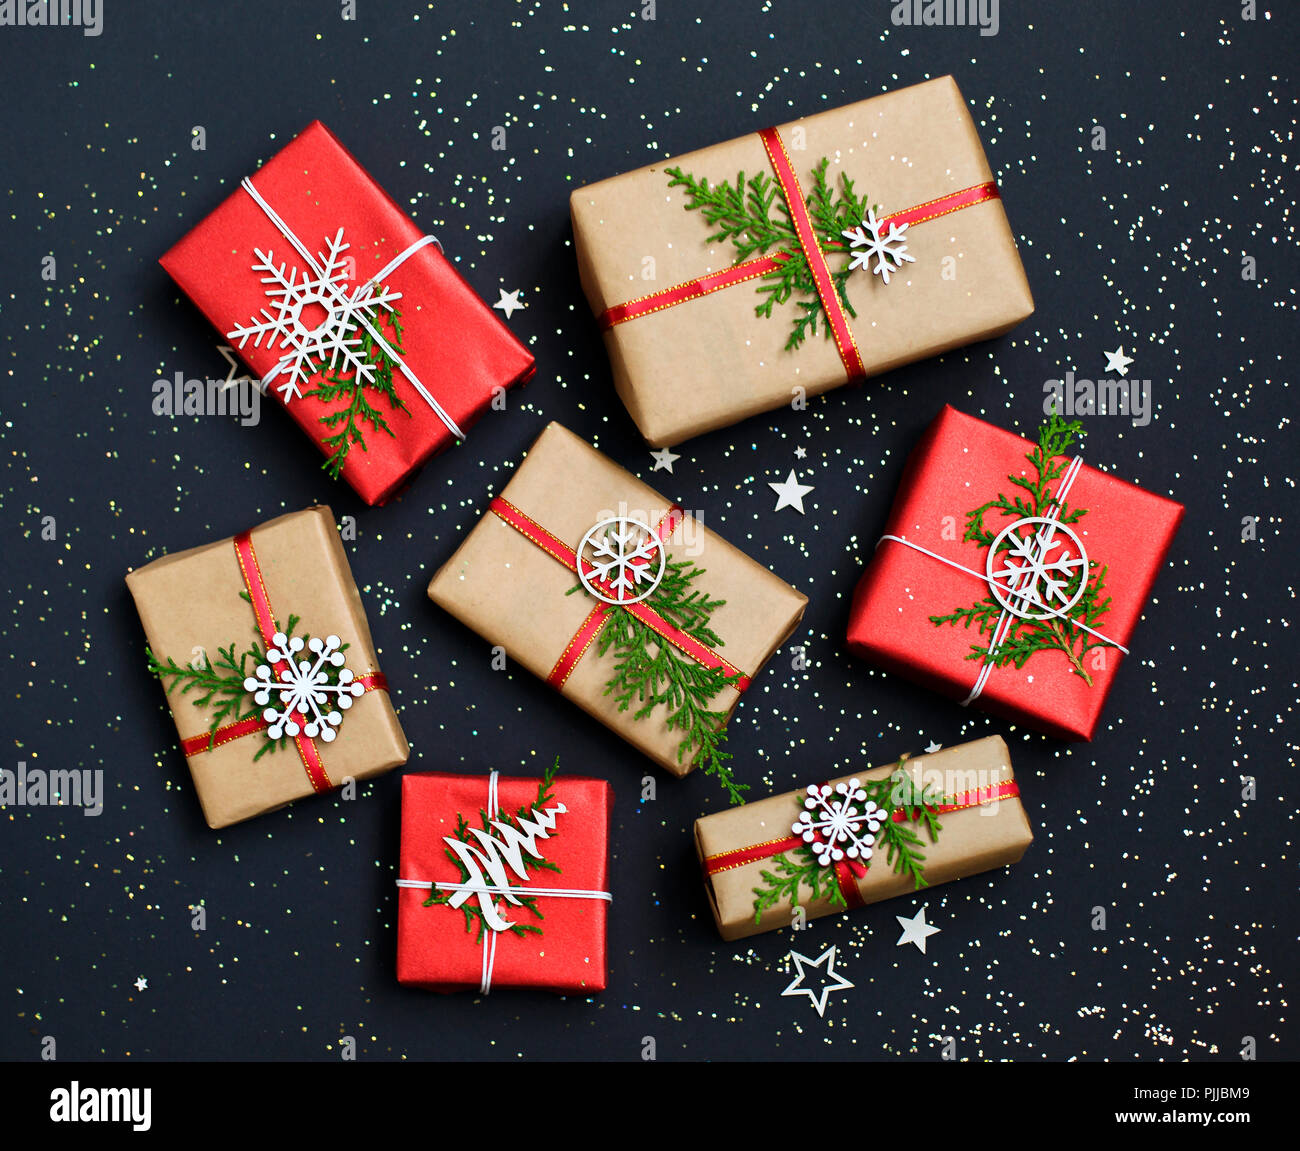 Christmas Greeting Card Making.Christmas Handmade Red Gift Boxes On Dark Background Top